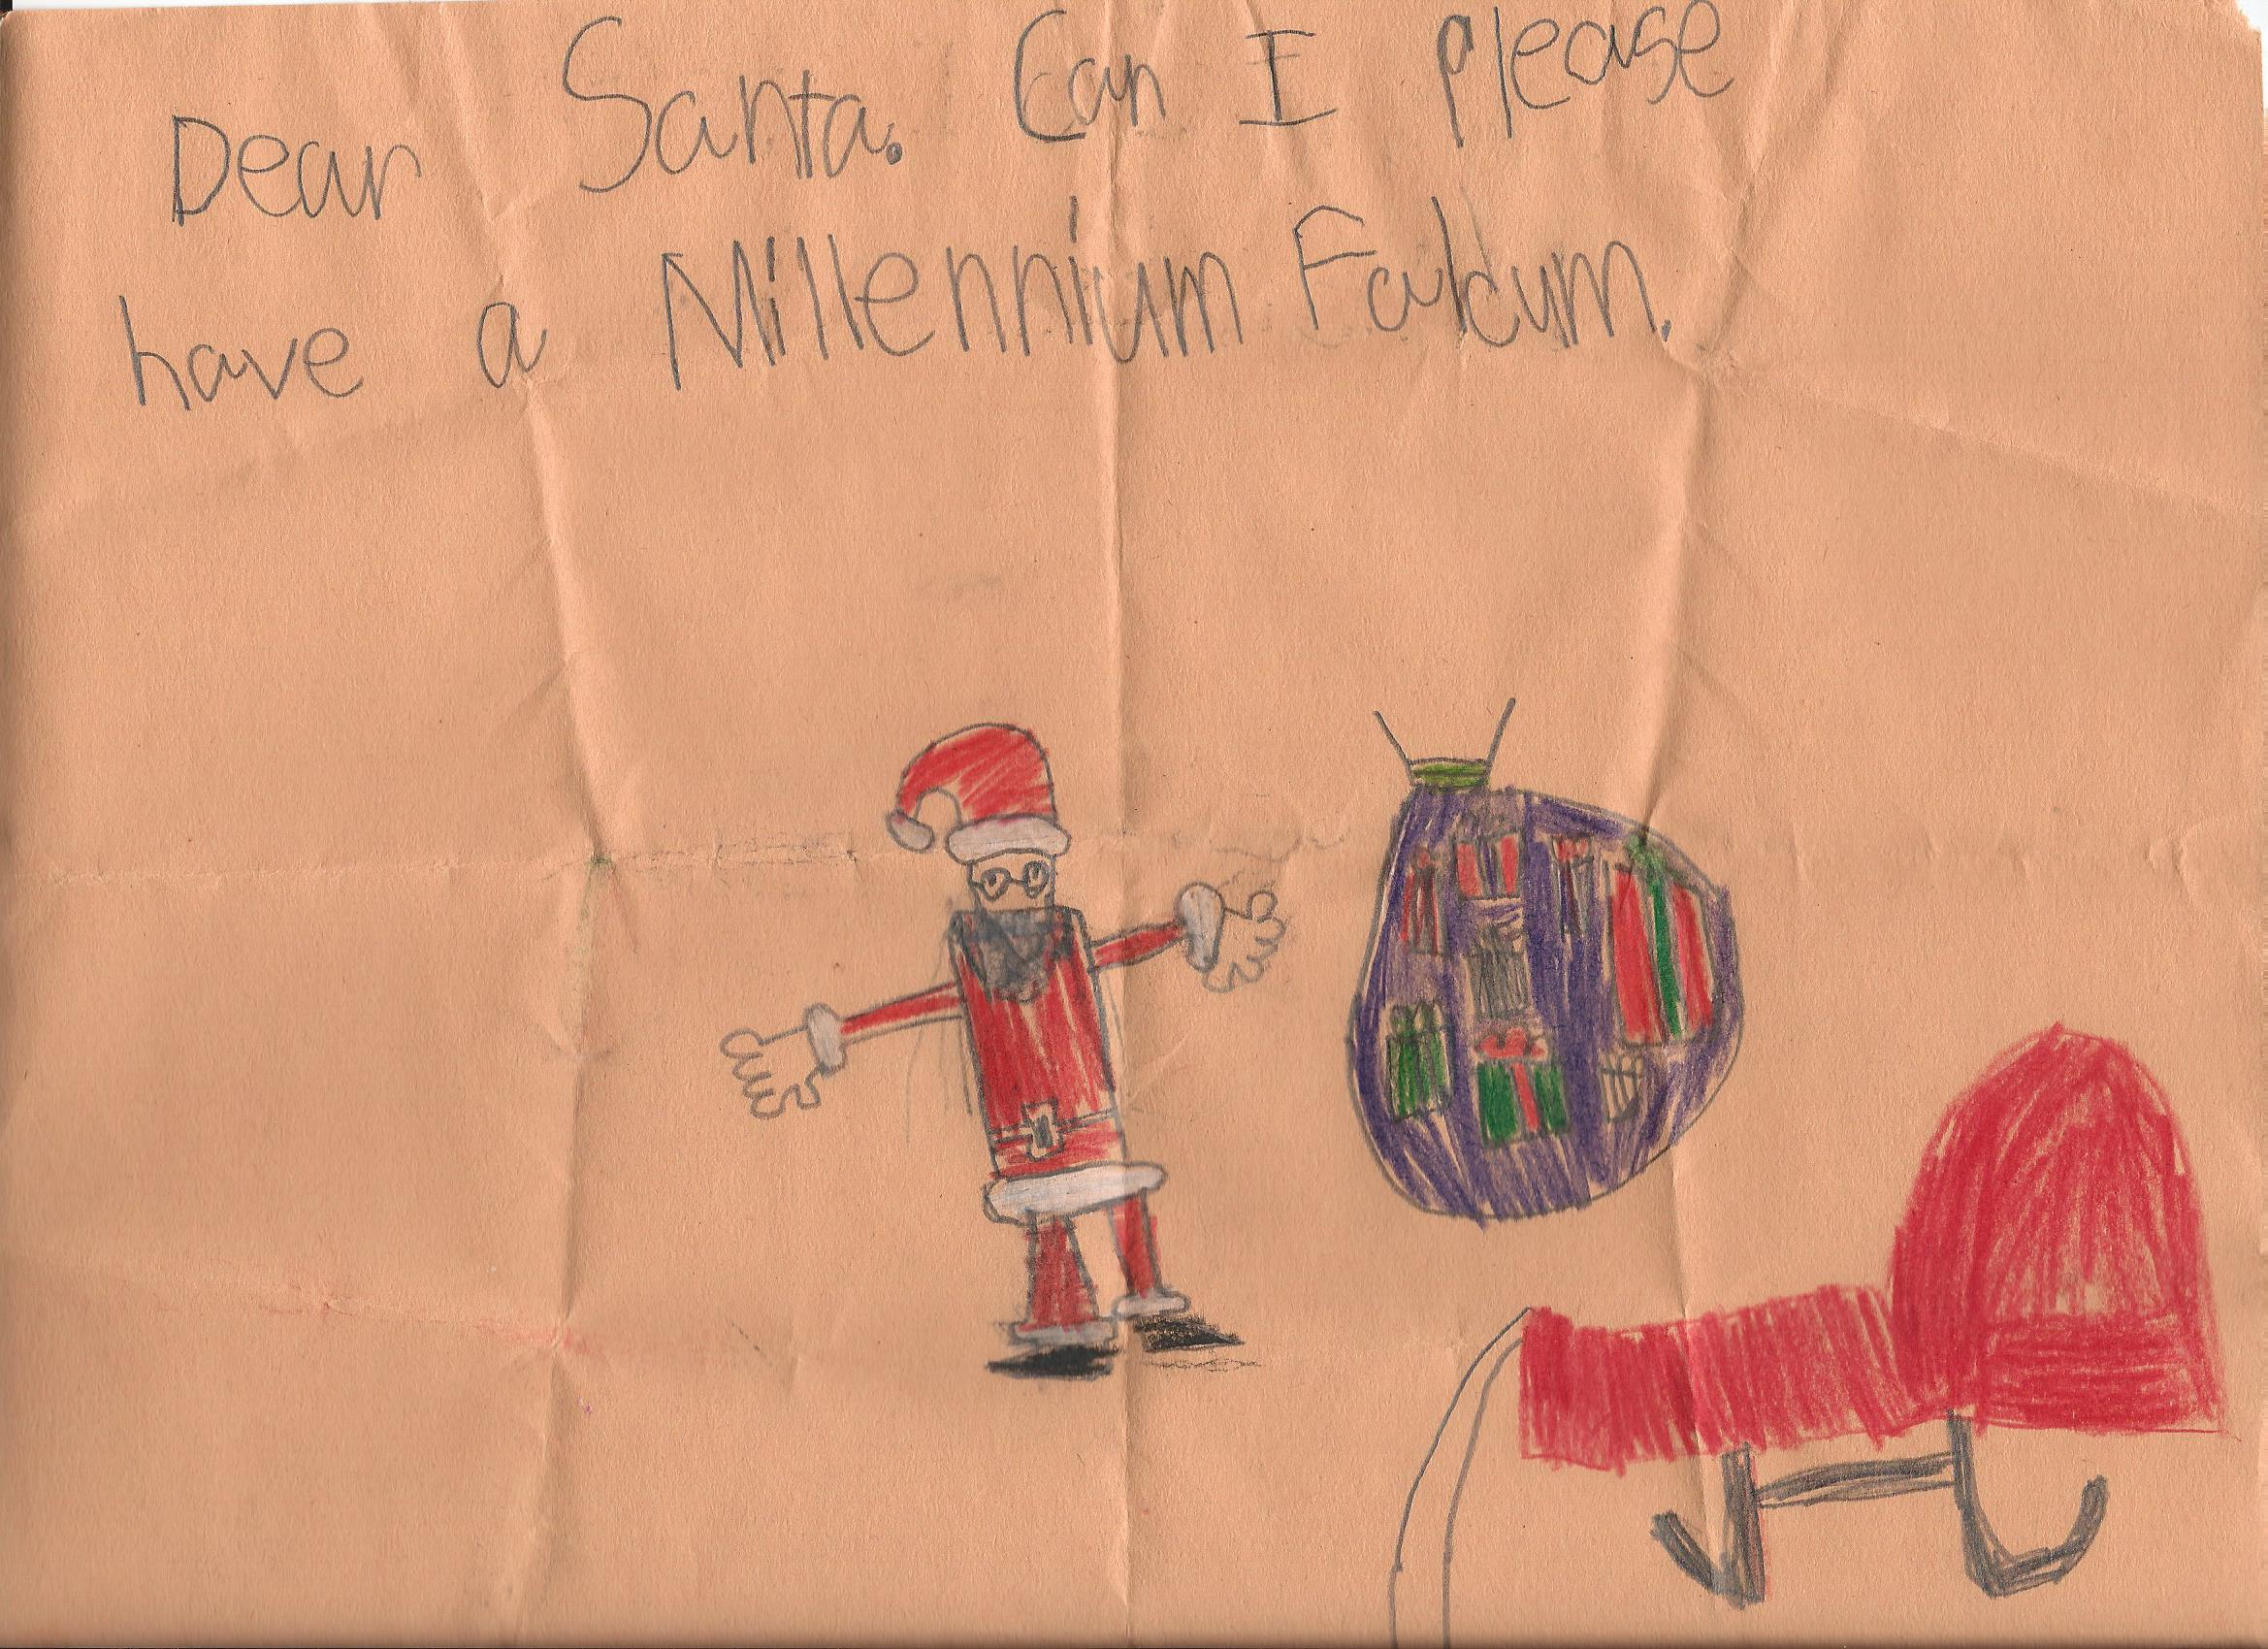 This letter came to Santa during our Christmas at the Homestead event. We hope that you, and this young man, have a wonderful Holiday.